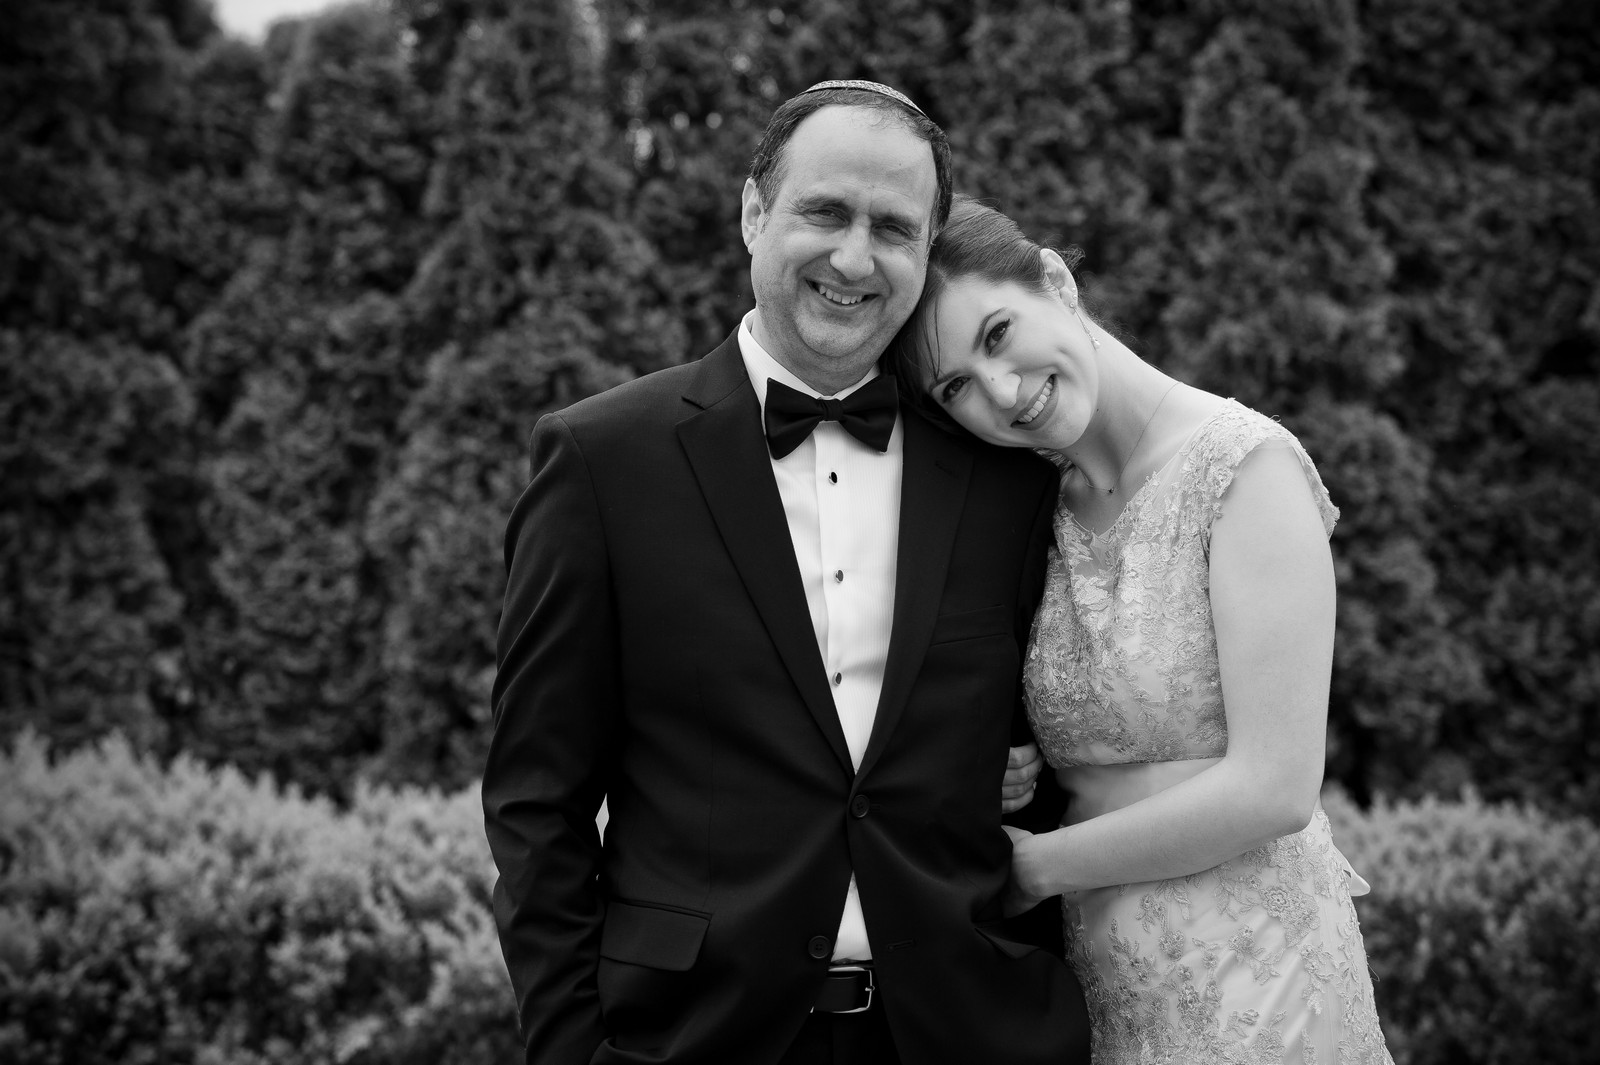 Yoey and Aaron's Memorial Day Modern Jewish Wedding at Anthony's Pier 9, New Windsor, NY Photos by Chaim Schvarcz bride father of the bride portraits